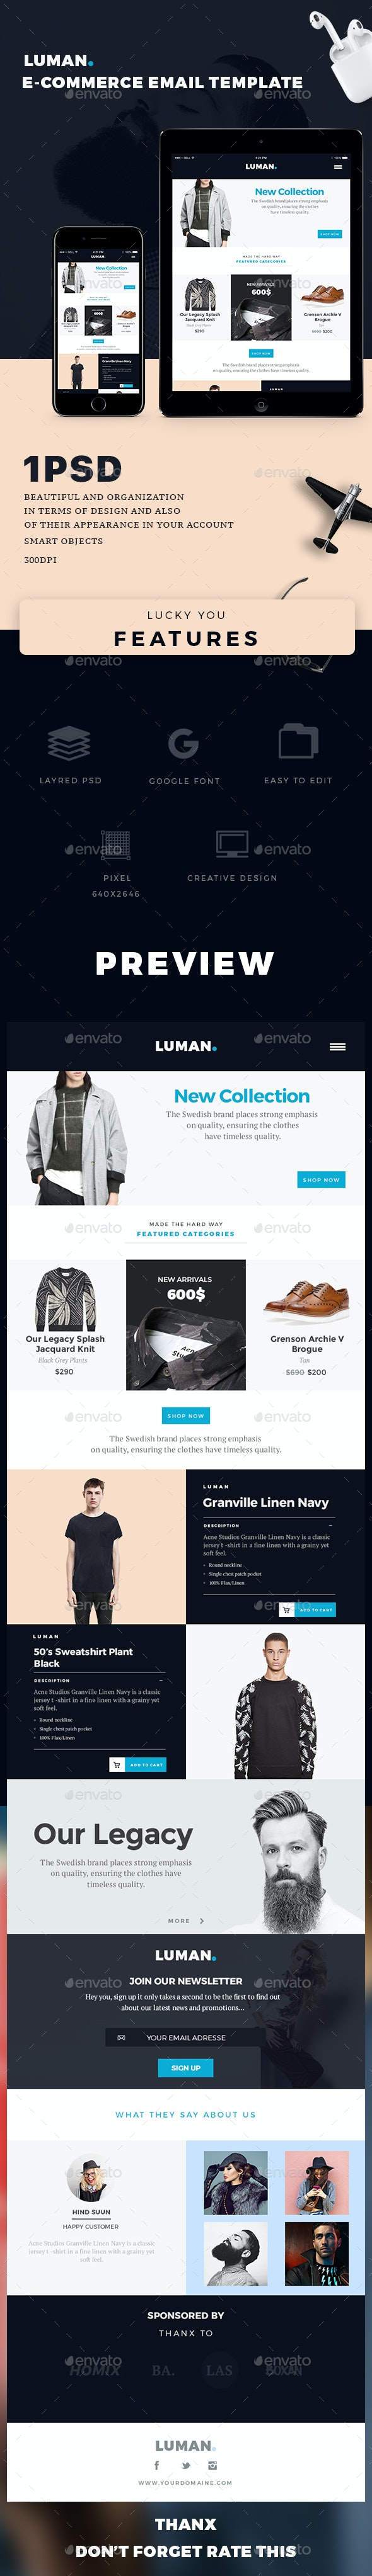 E-commerce Email Template - Luman - E-newsletters Web Elements